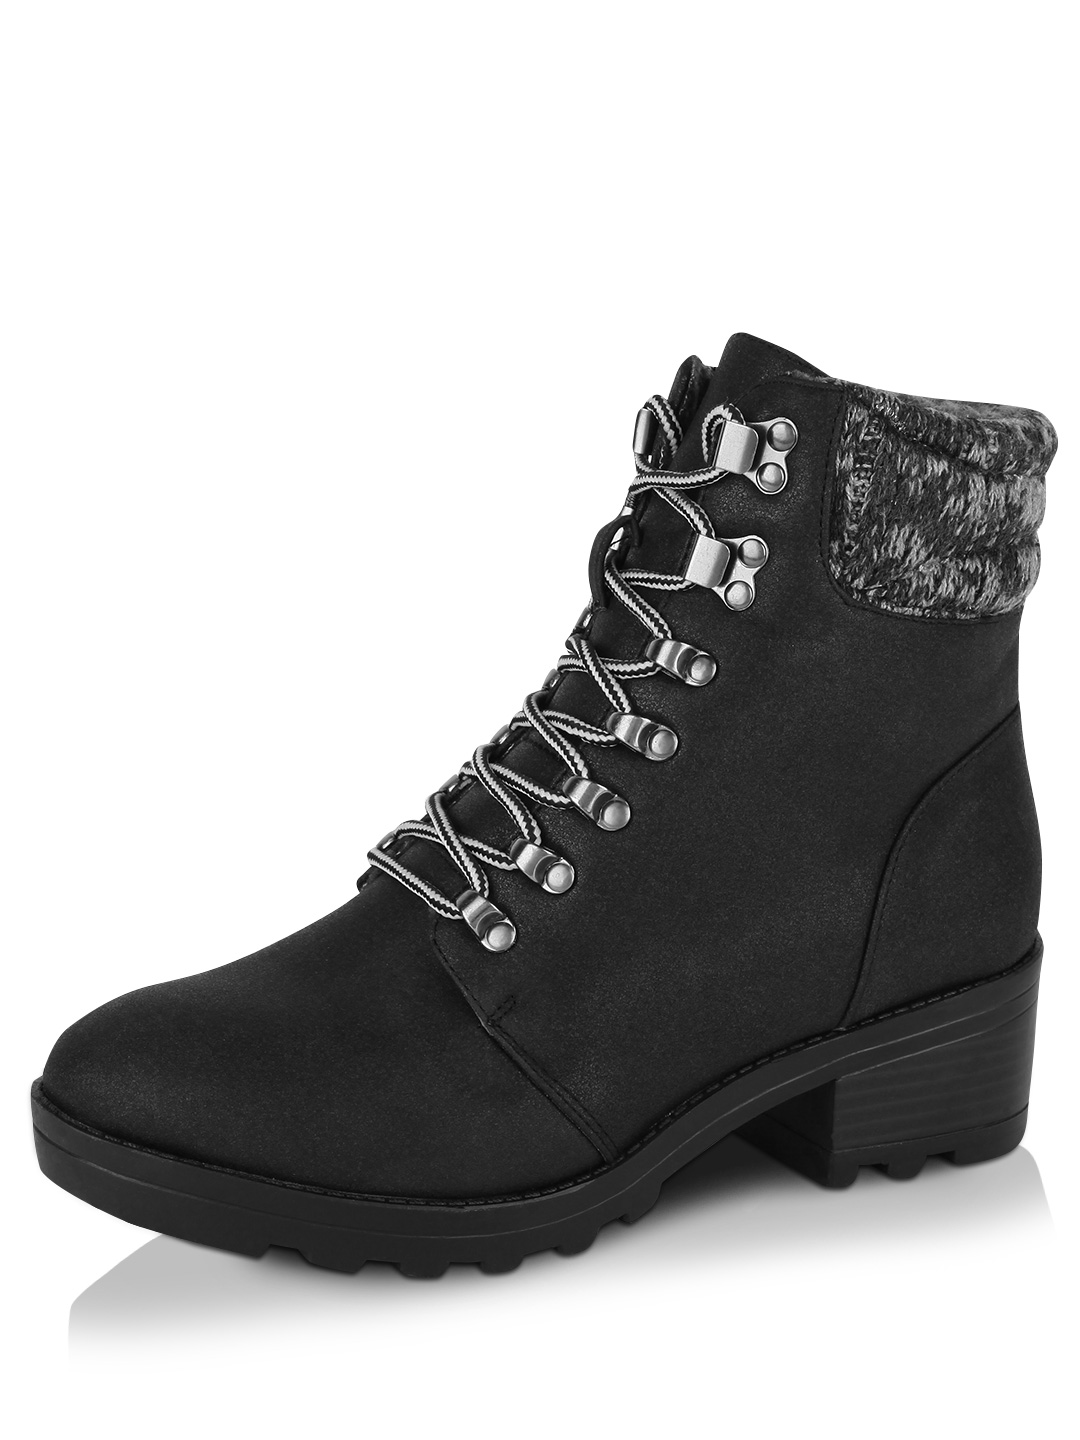 New Look Black Knit Top Hiker Boots 1